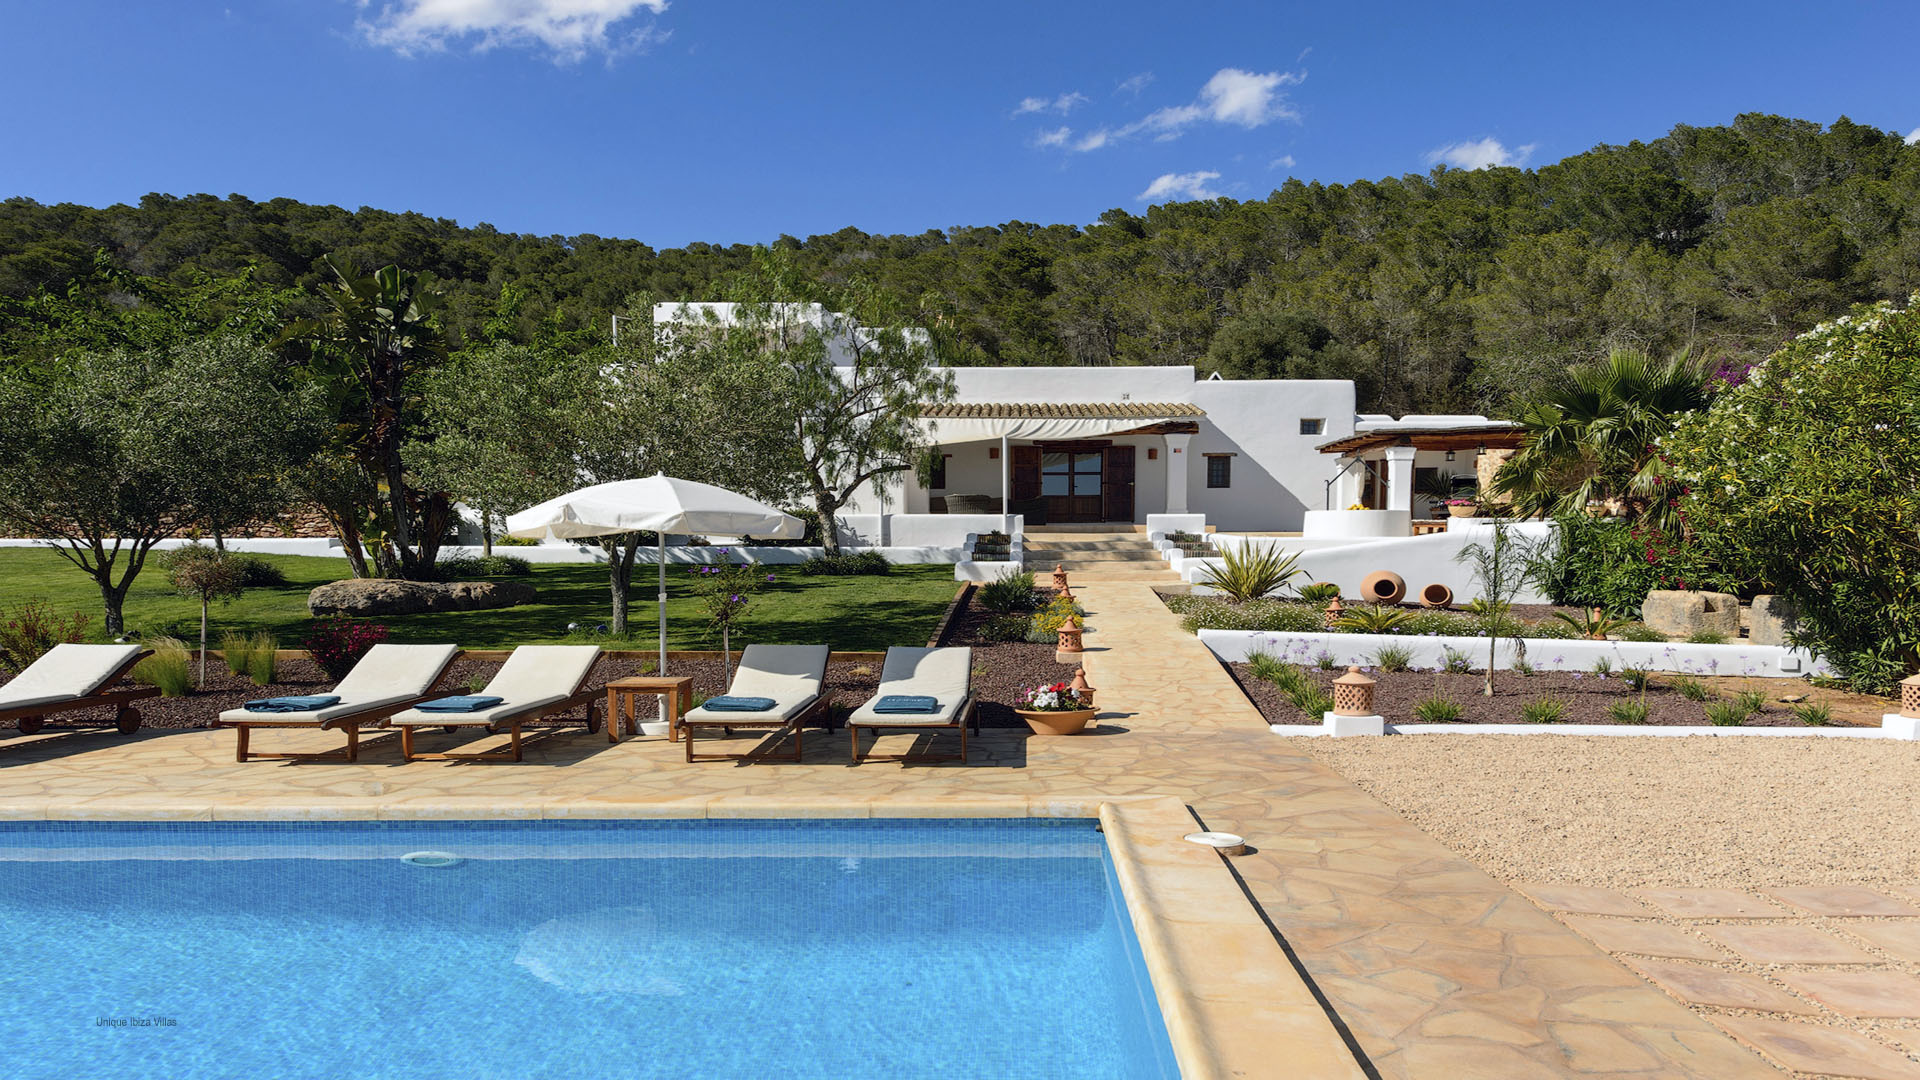 FINCA MAGO  -  (sleeps 9, rural villa near Santa Gertrudis central Ibiza, 5 bedrooms)